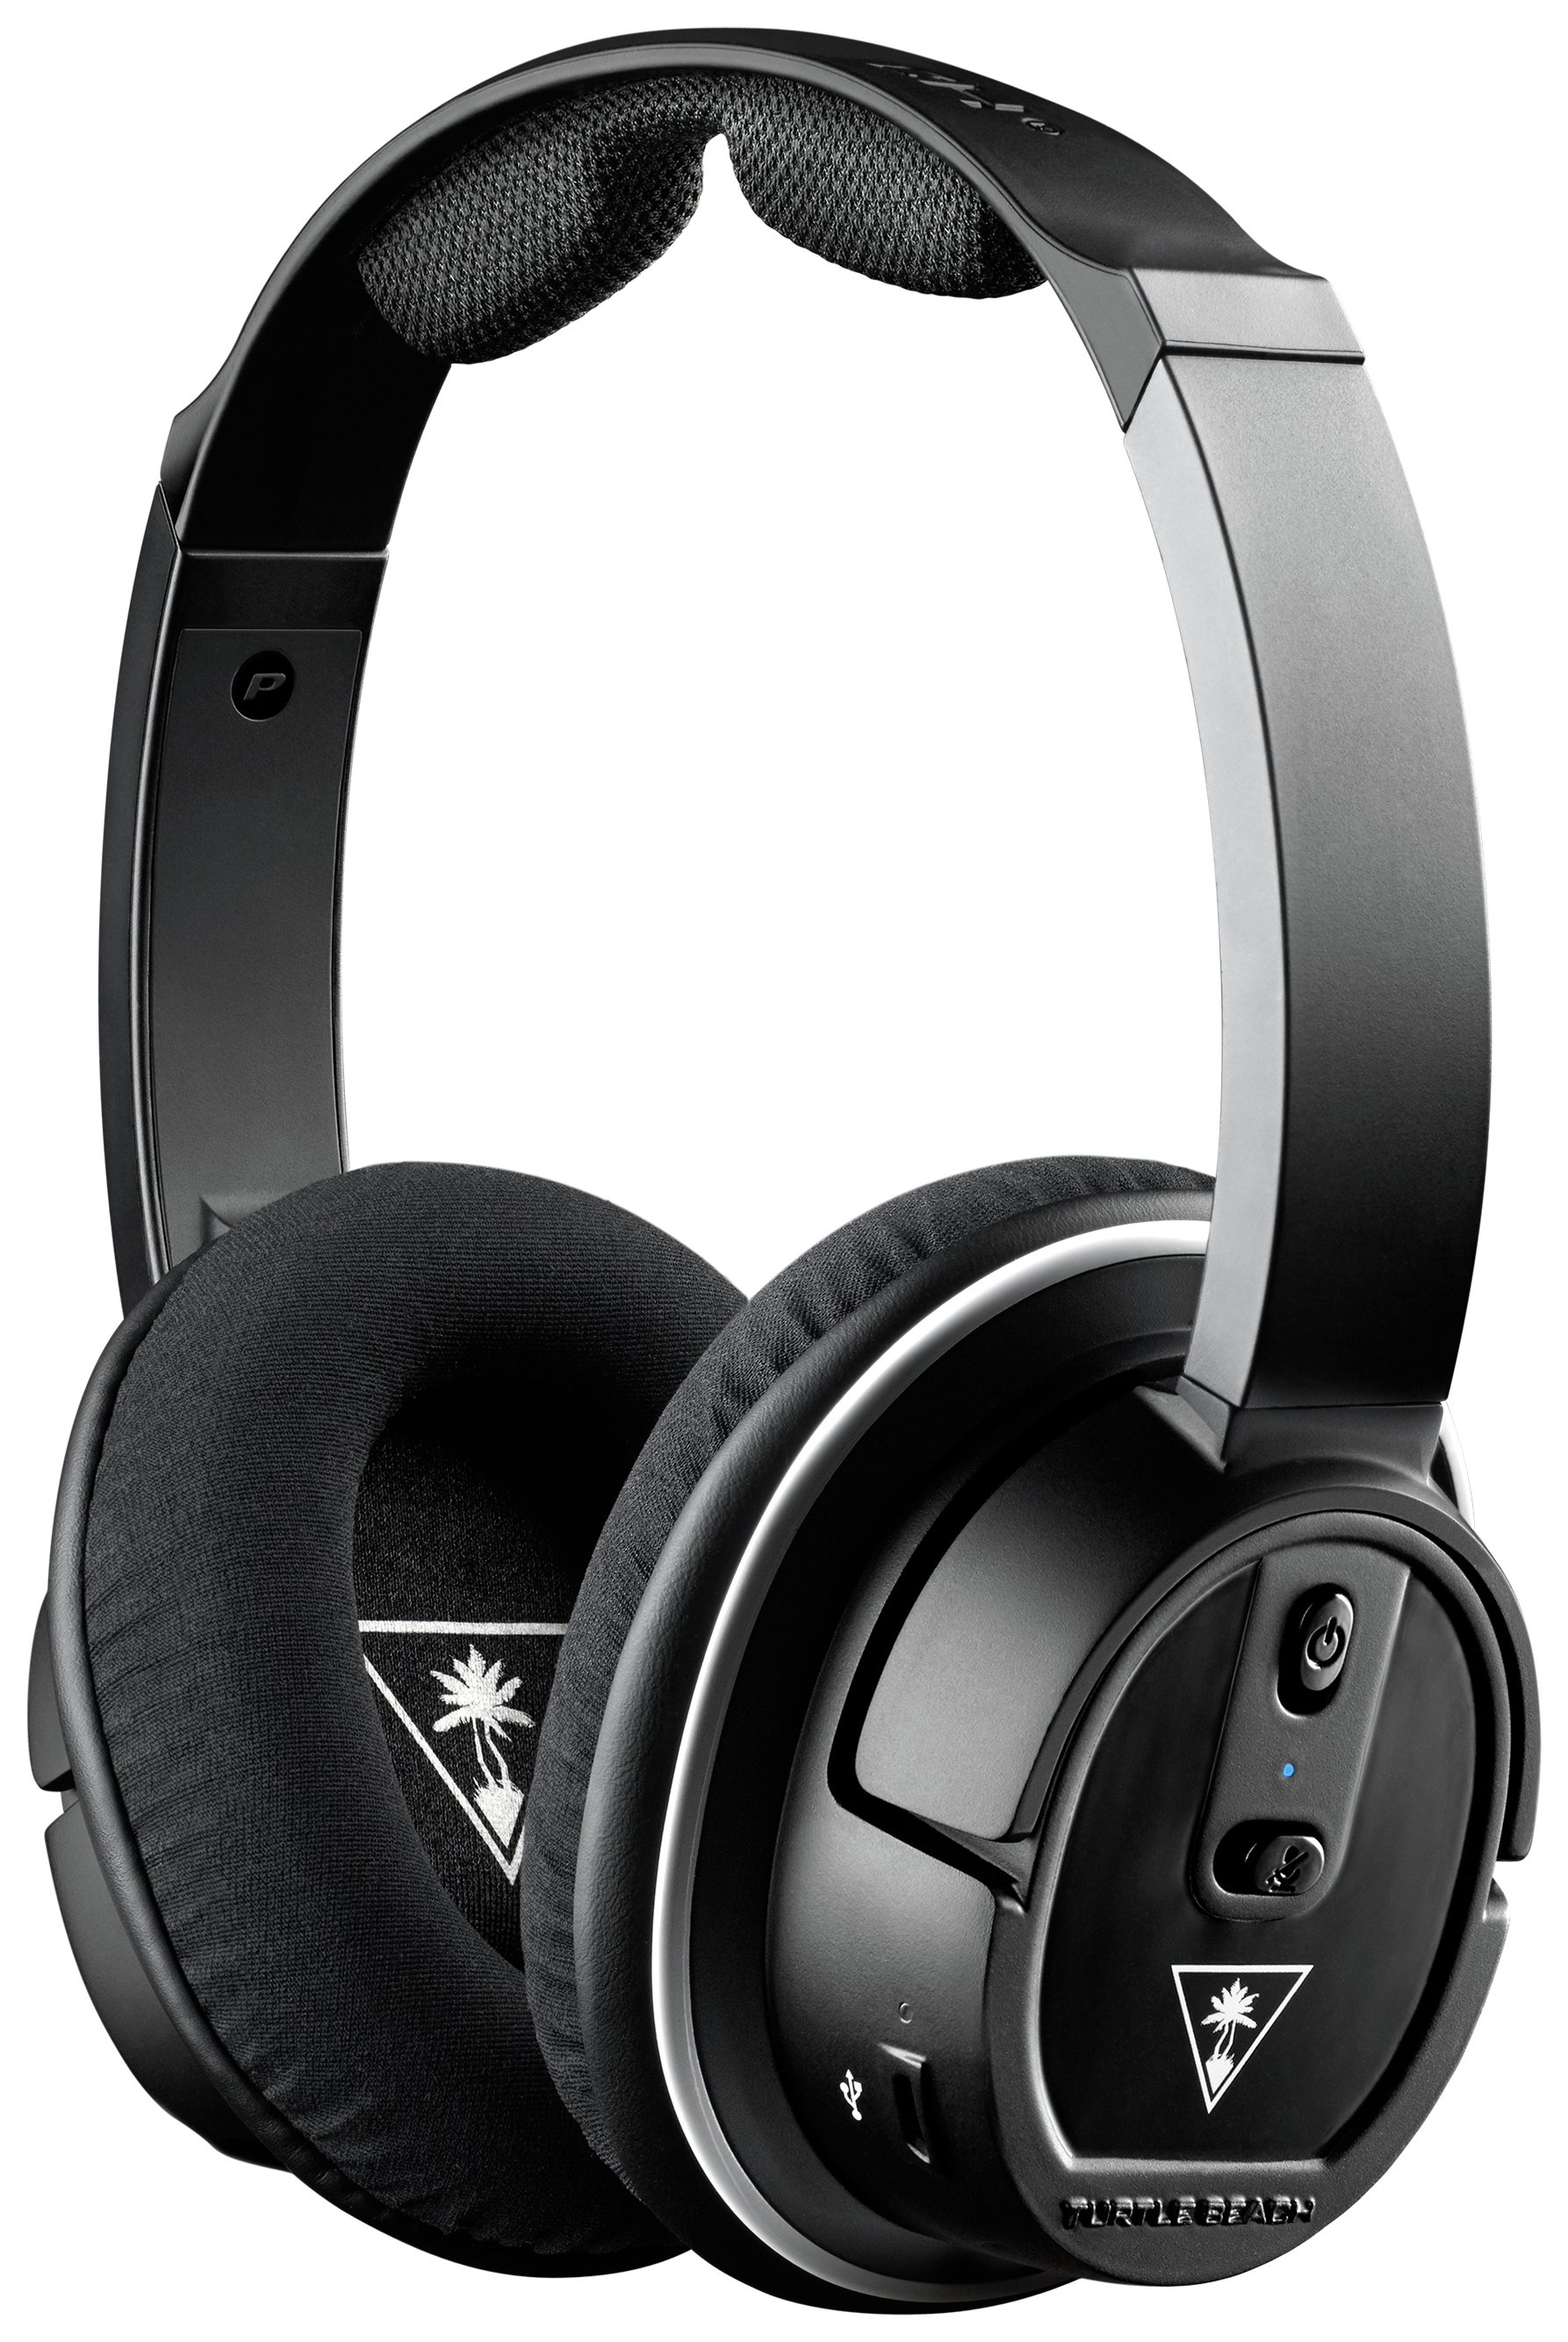 Turtle Beach Turtle Beach Ear Force Stealth 350VR Gaming Headset for PS4.